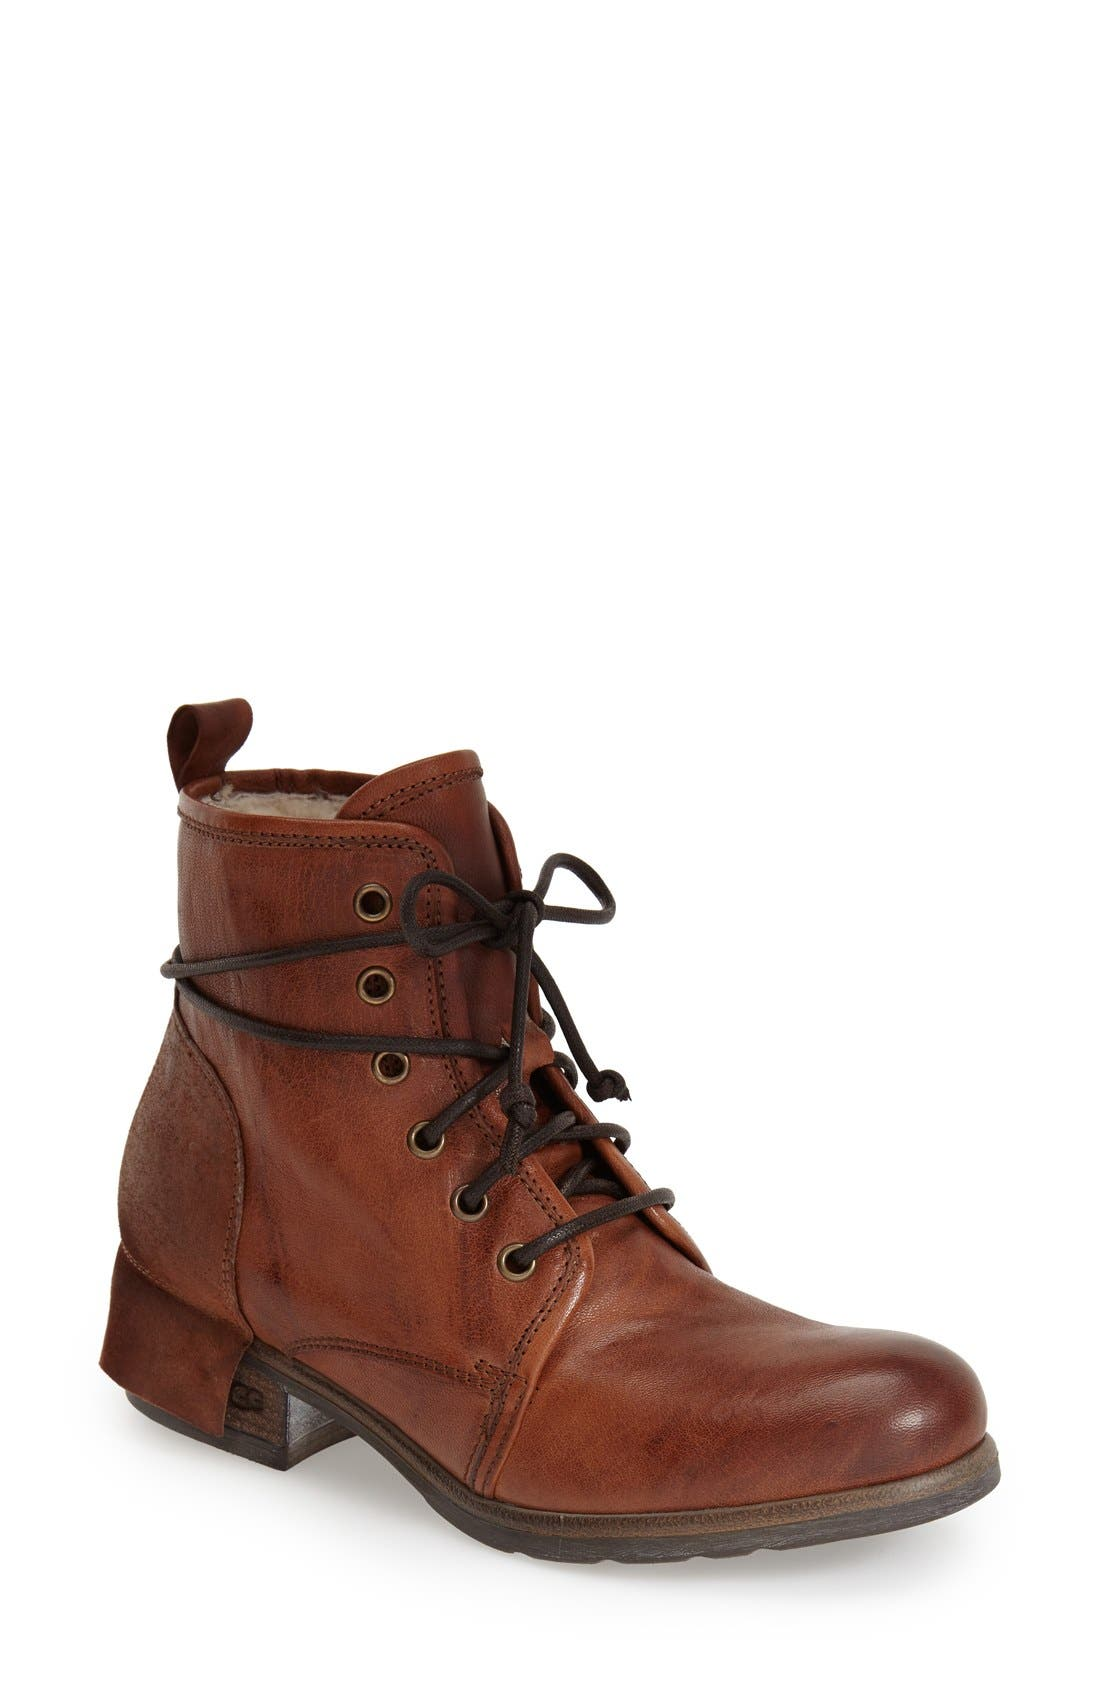 Alternate Image 1 Selected - UGG® Collection 'Tesa' Lace-Up Ankle Boot (Women)